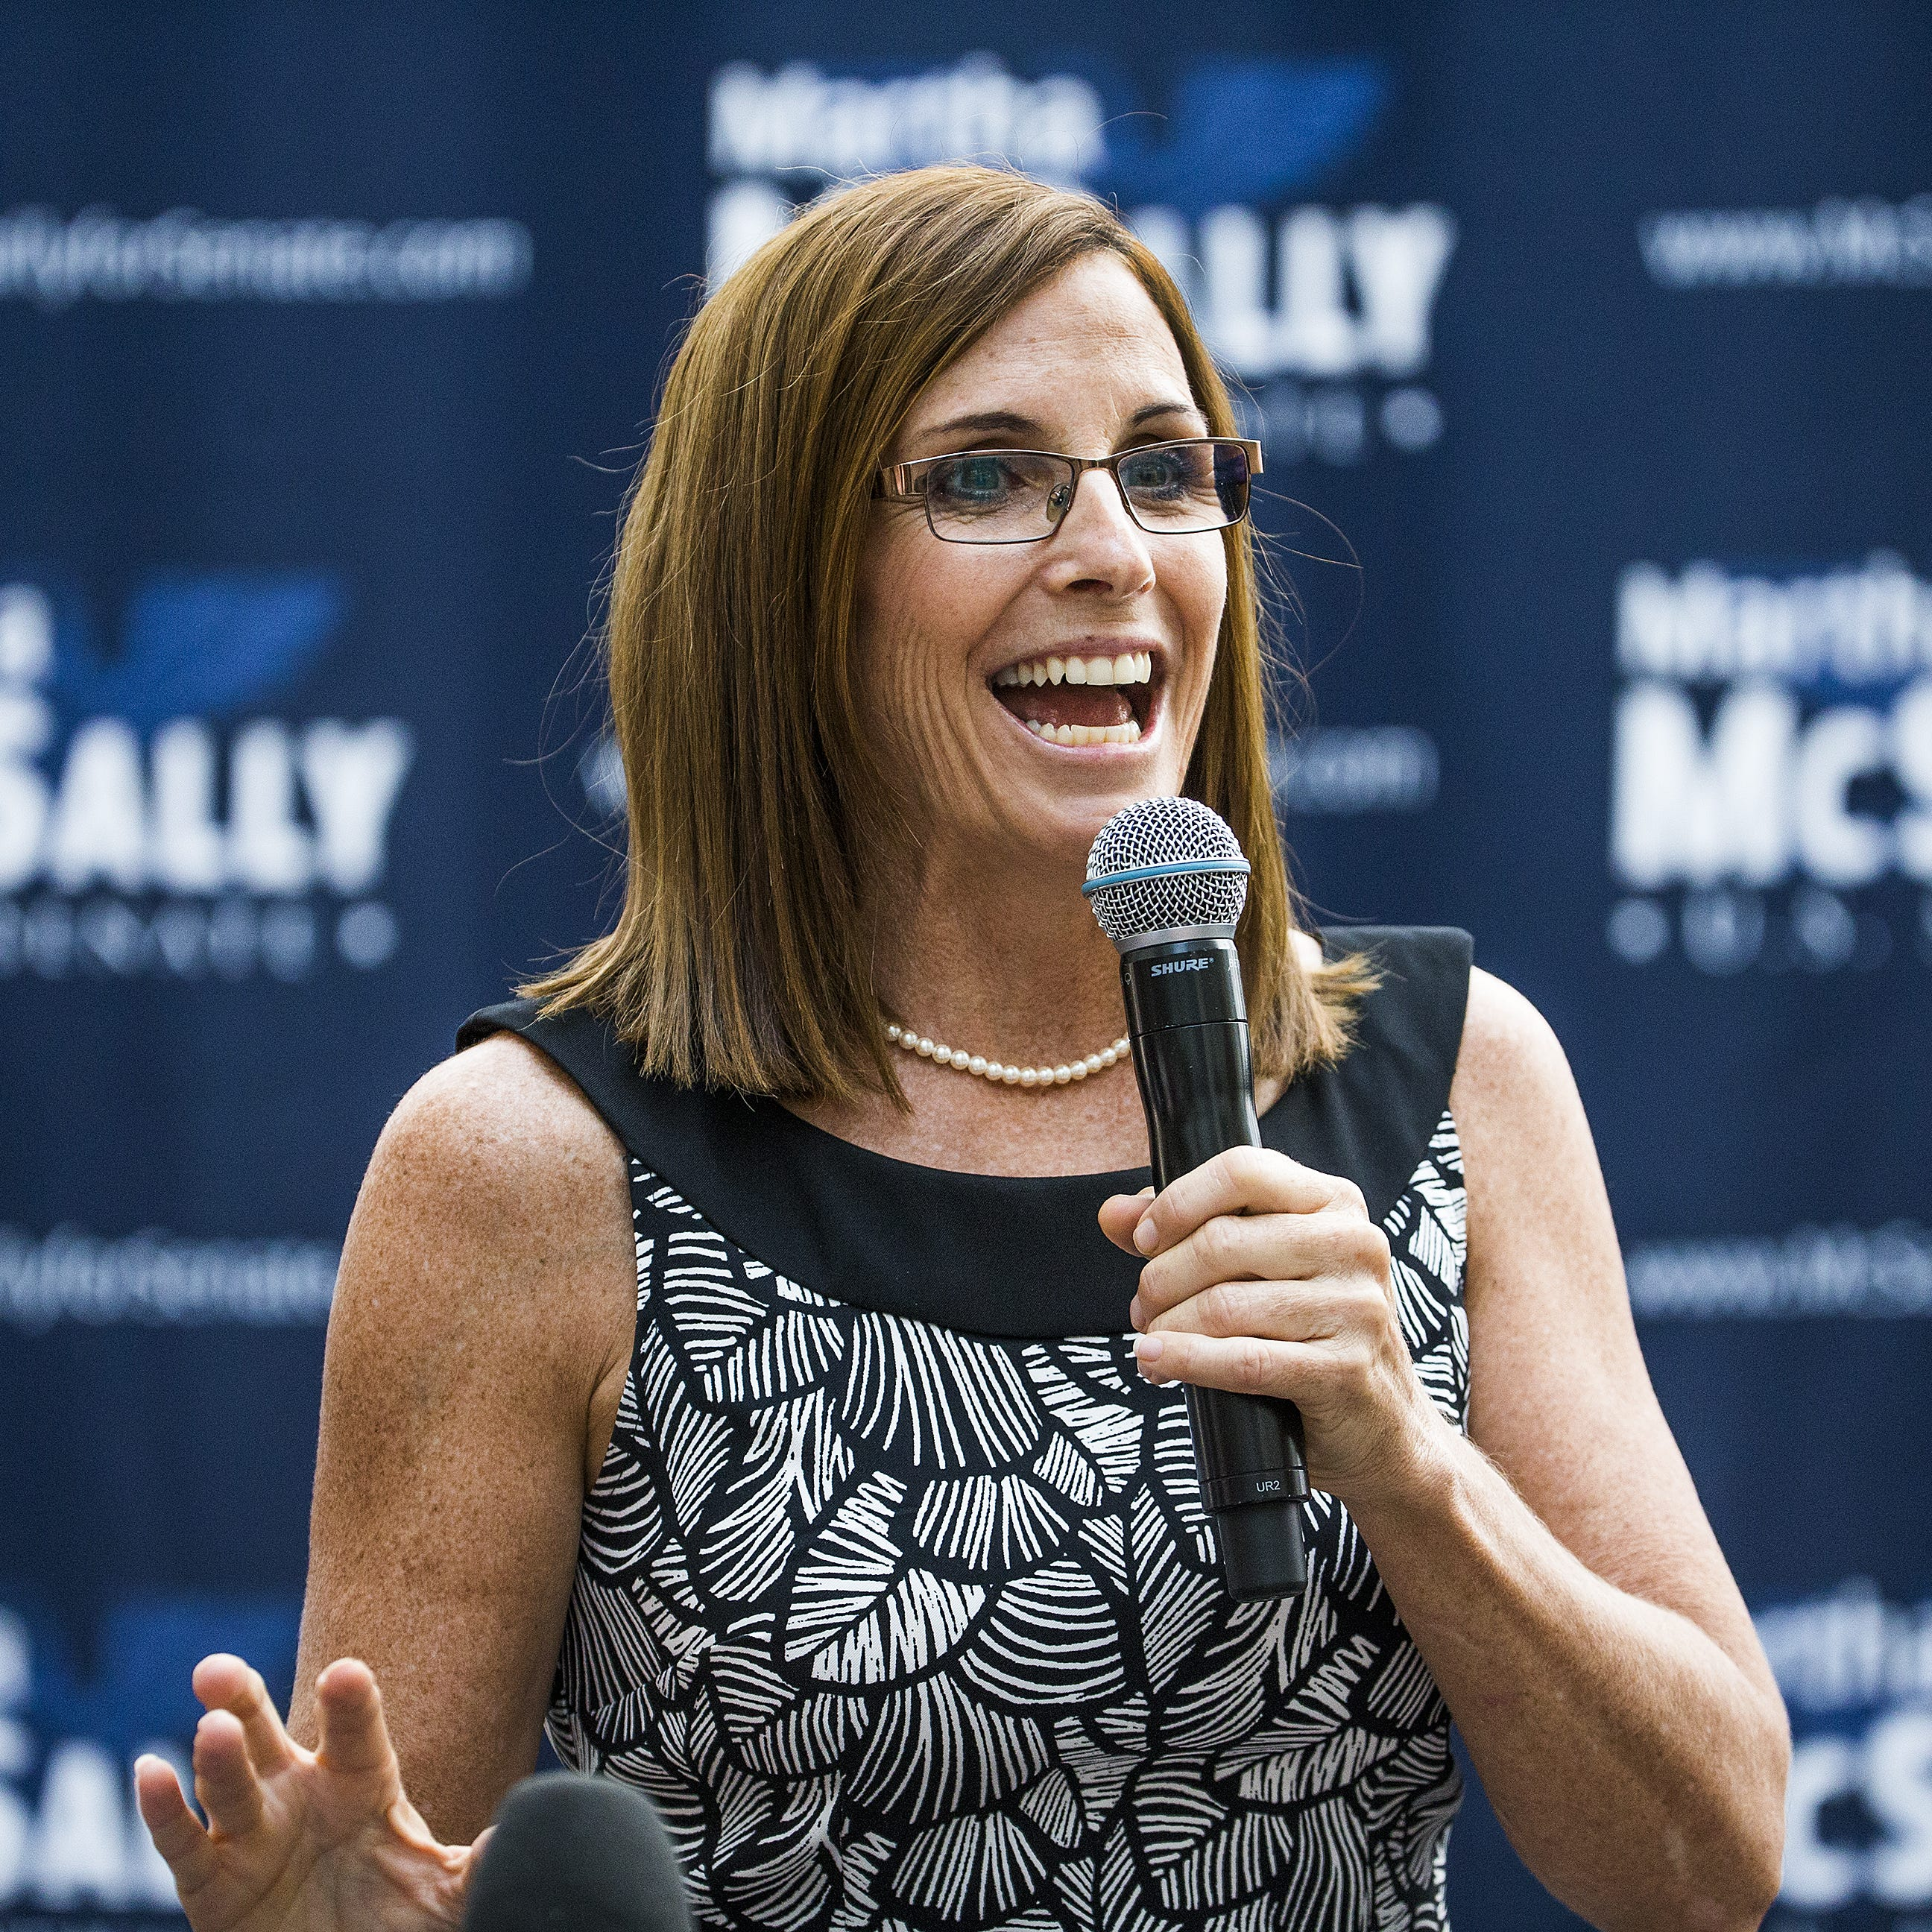 Don't believe that 'age tax' attack on Martha McSally. It's political nonsense